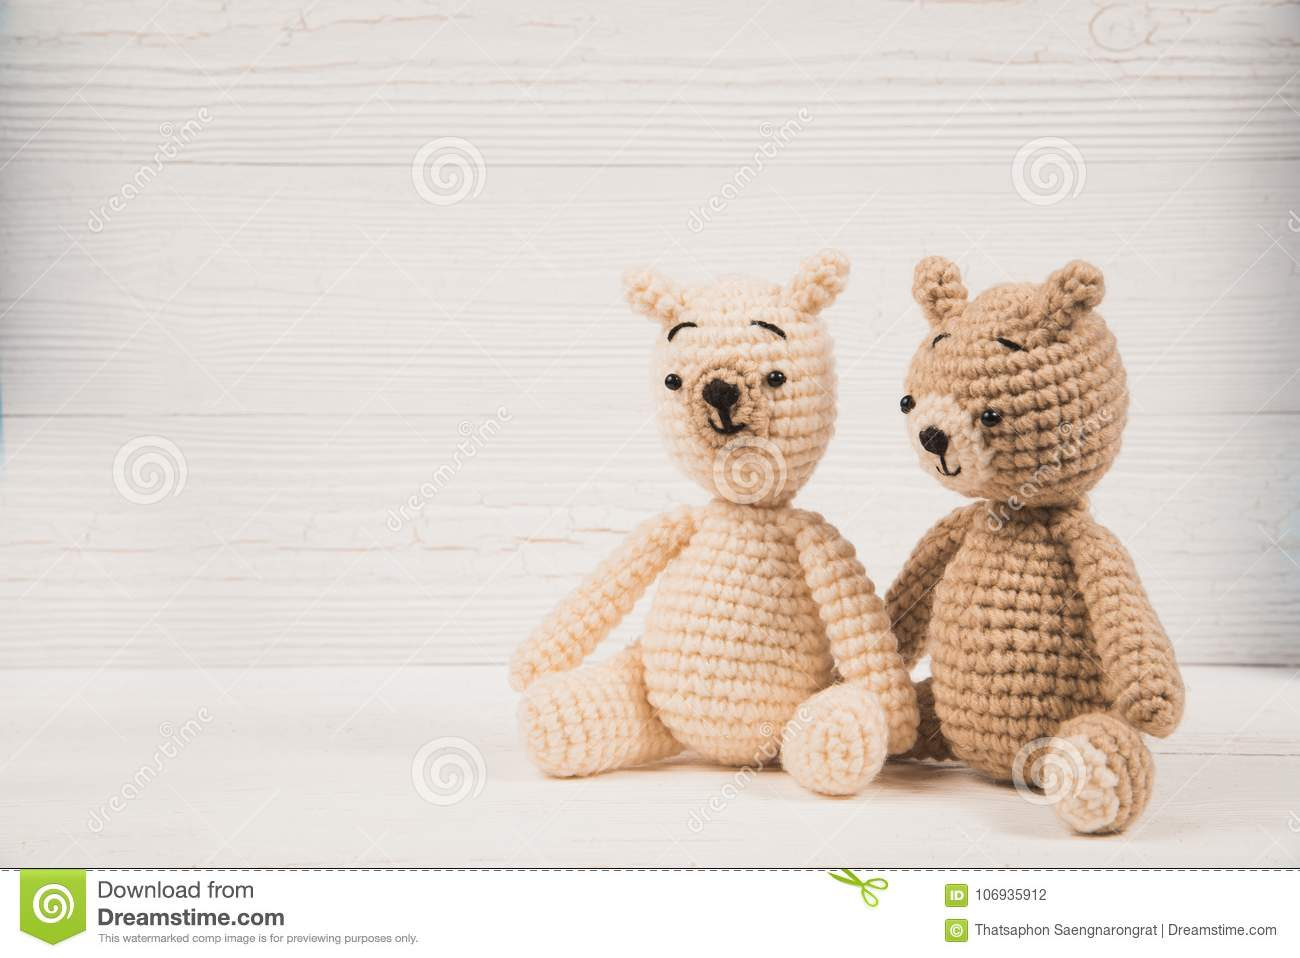 Couple teddy bear with red heart crochet knitting handmade, love and valentine concept.